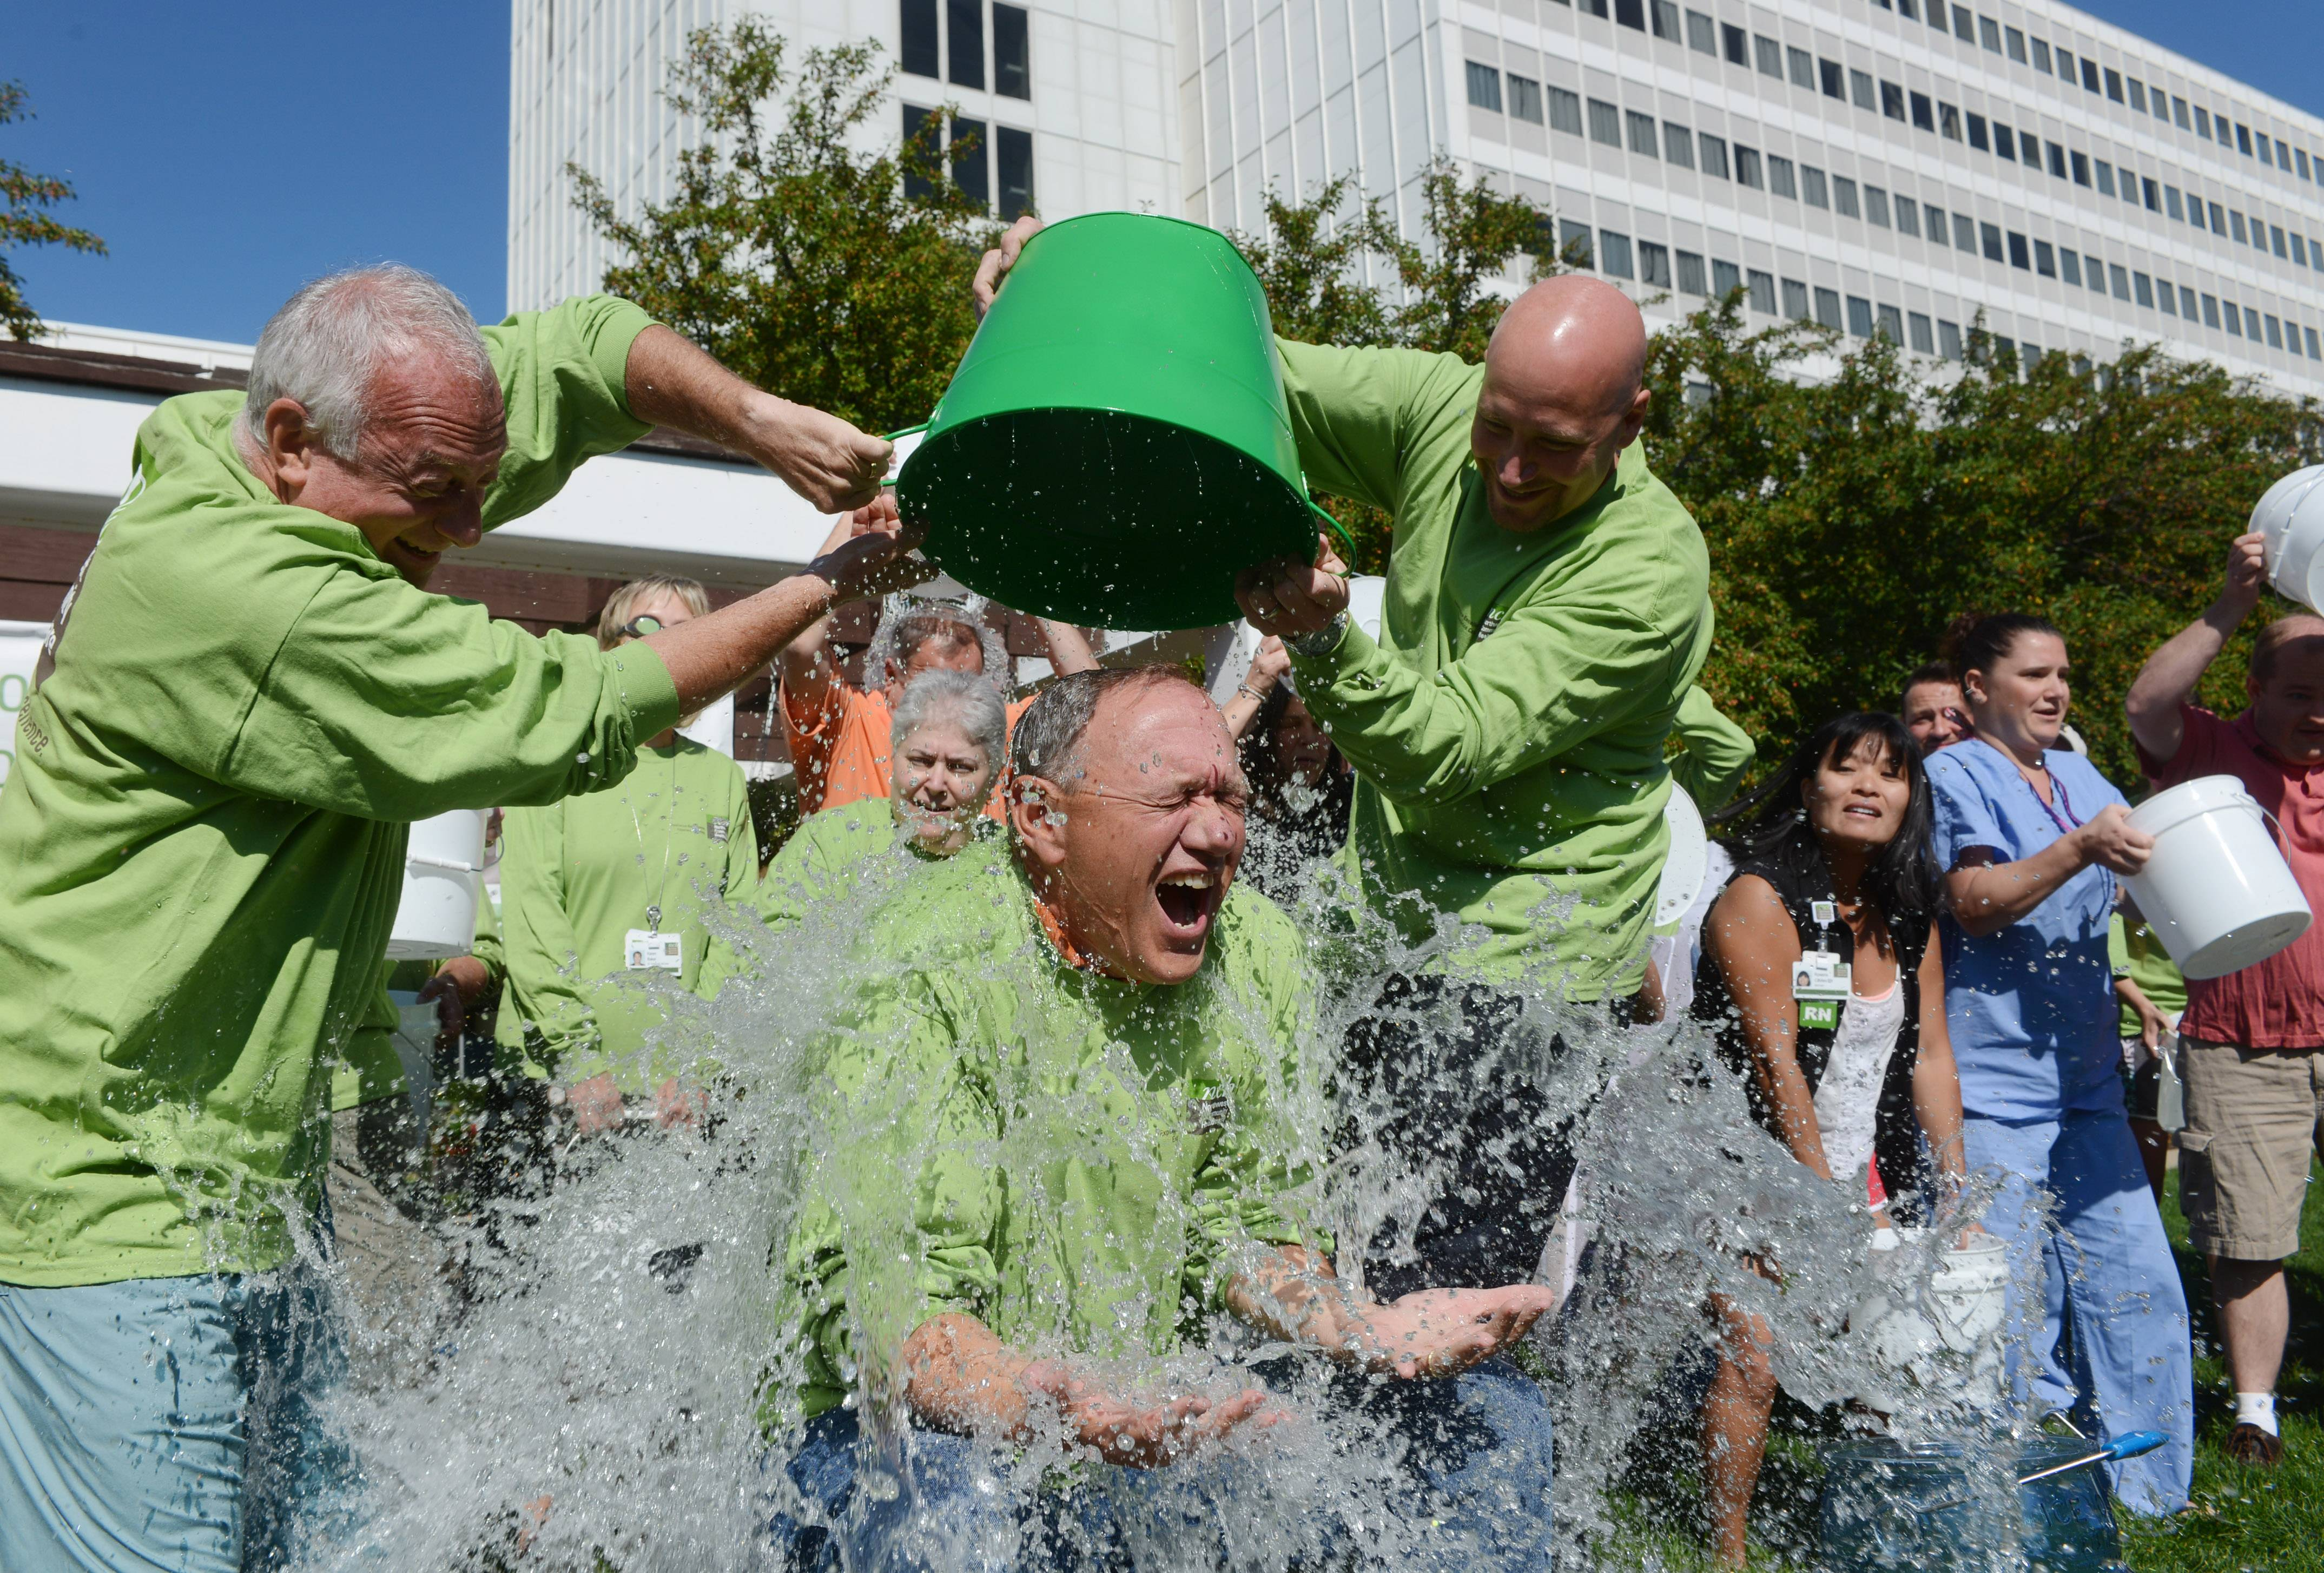 Northwest Community Hospital CEO Stephen Scogna kept the challenge going by daring firefighters from Palatine and Rolling Meadows to take the Ice Bucket Challenge. Thanks largely to social media, the challenge has helped raise millions of dollars for ALS charities.